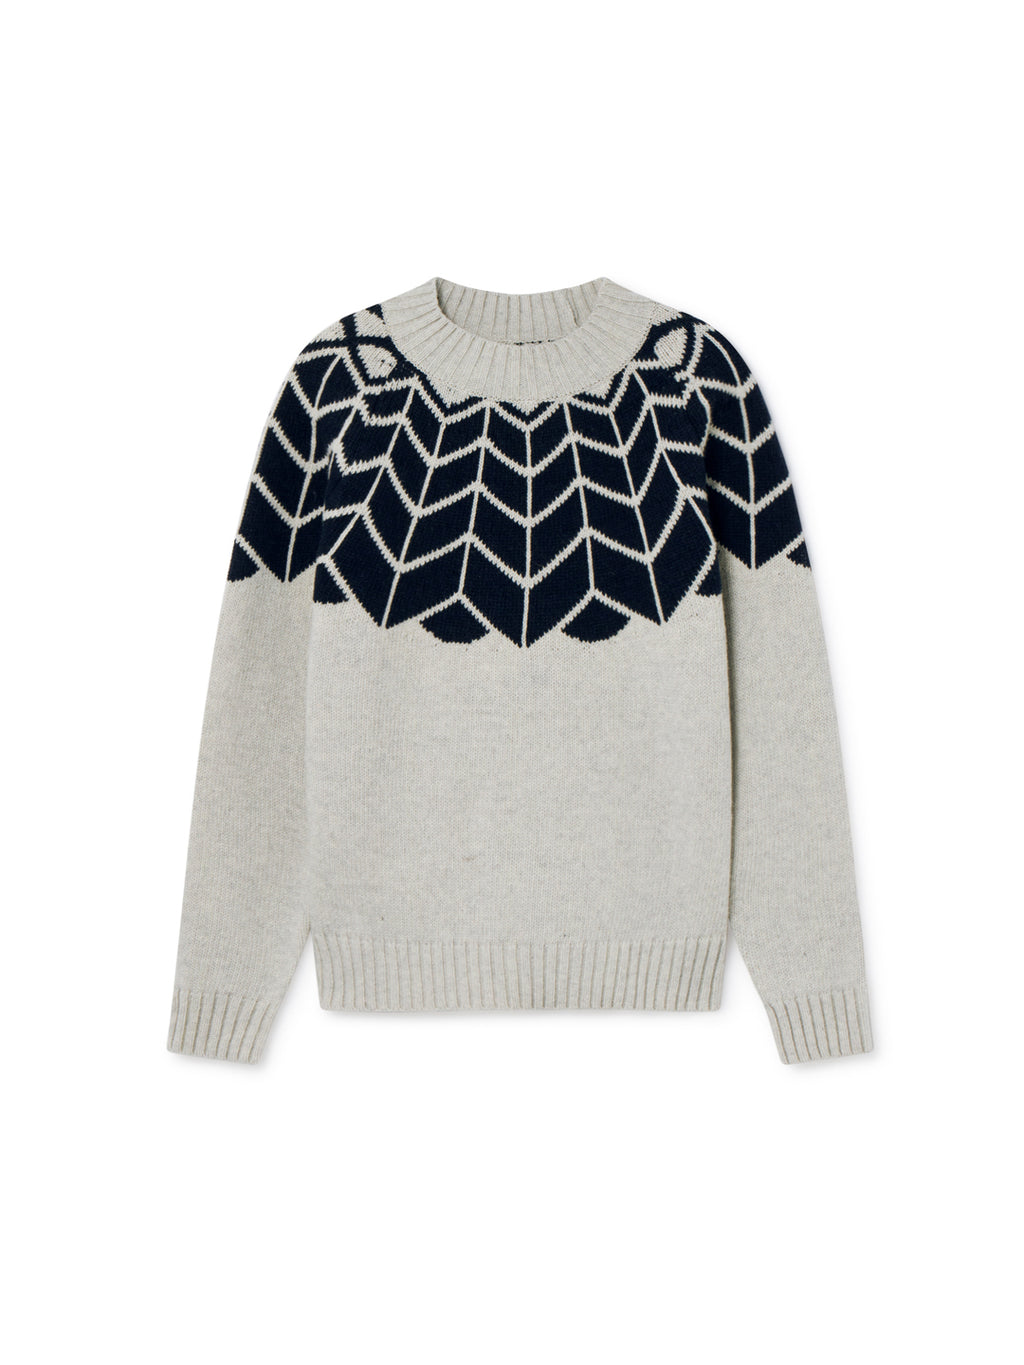 TWOTHIRDS Womens Knit: Noro - Navy front